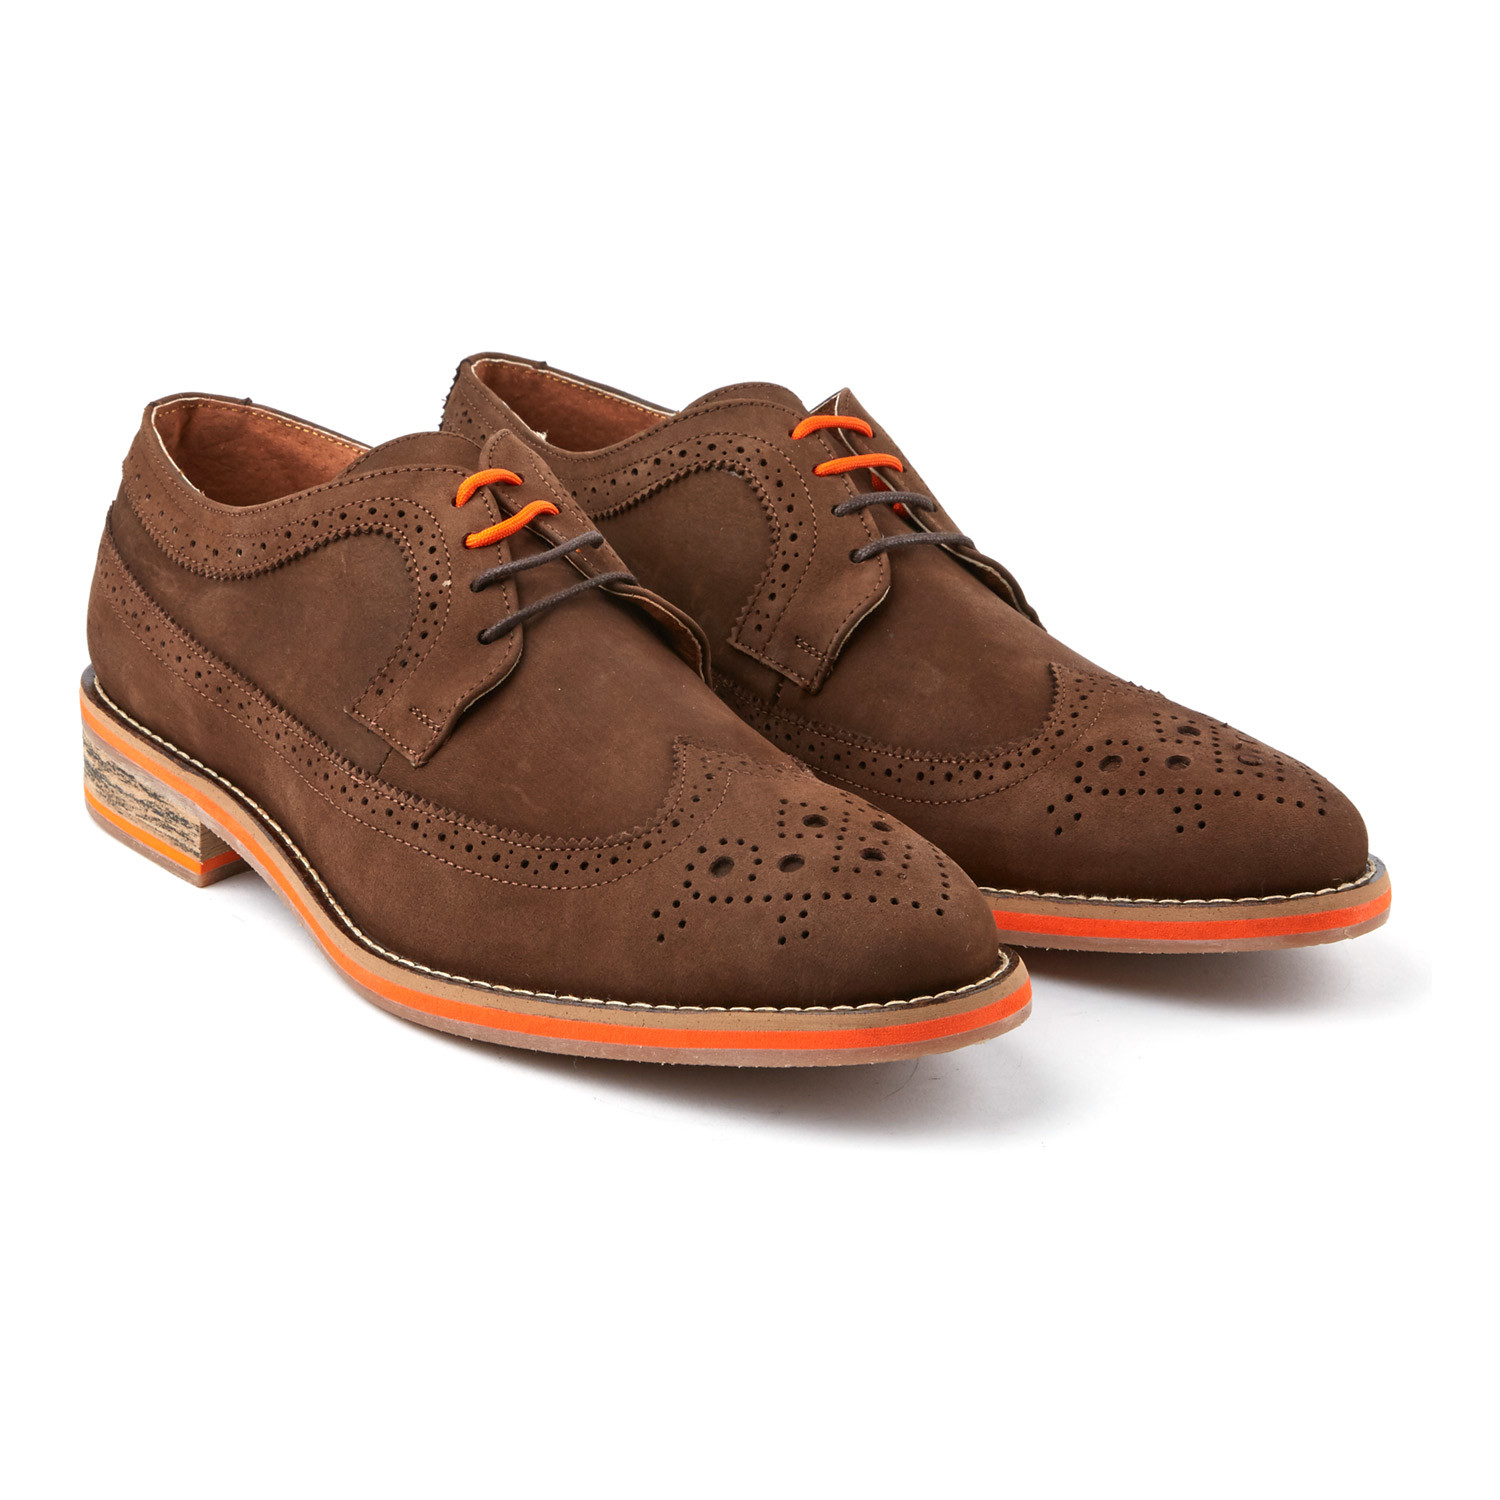 wingtip dress shoe camel us 7 s andre touch